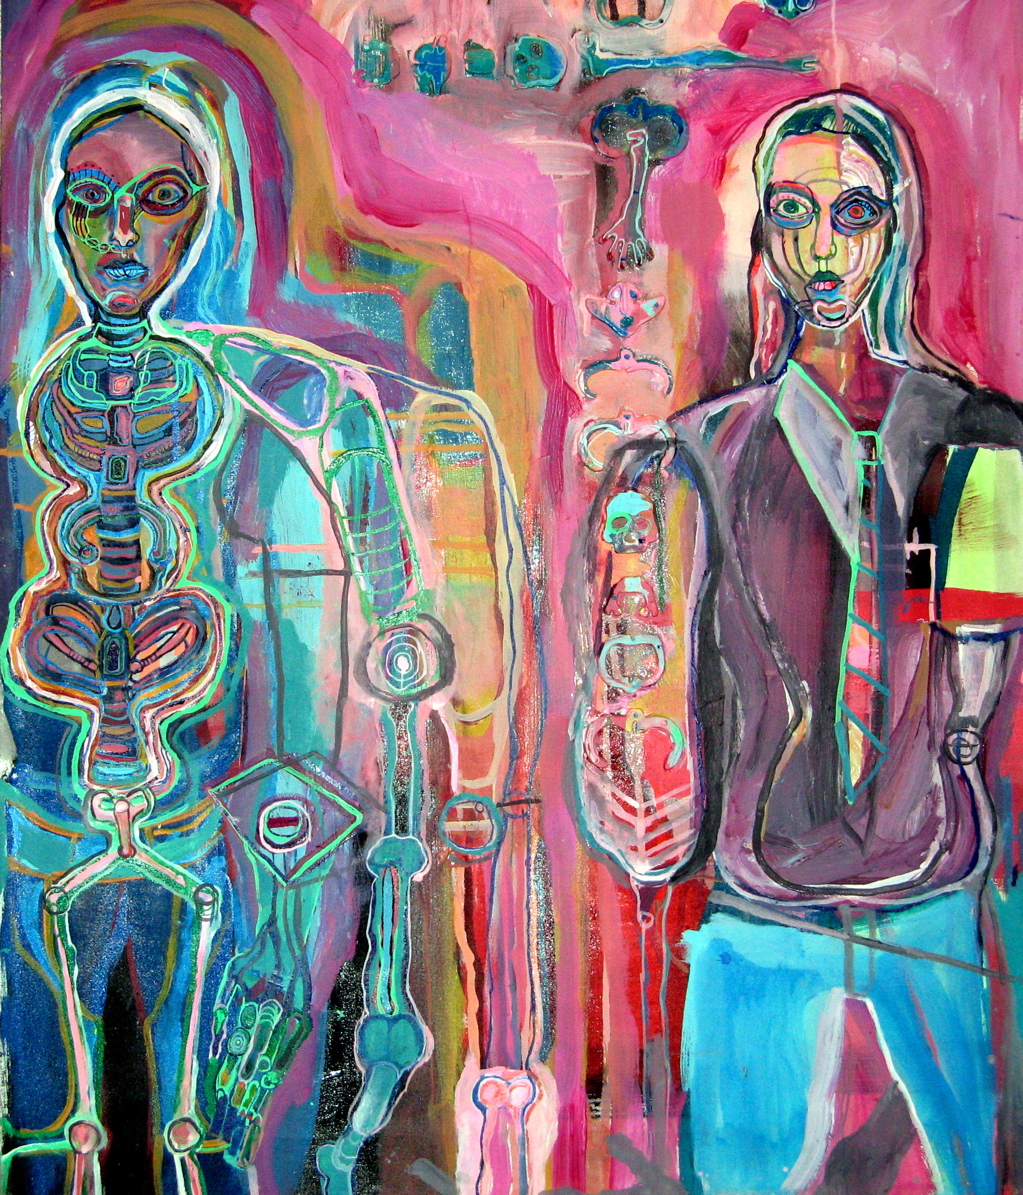 "model man, mixed media on canvas, 36x22"", 2004 (sold)"